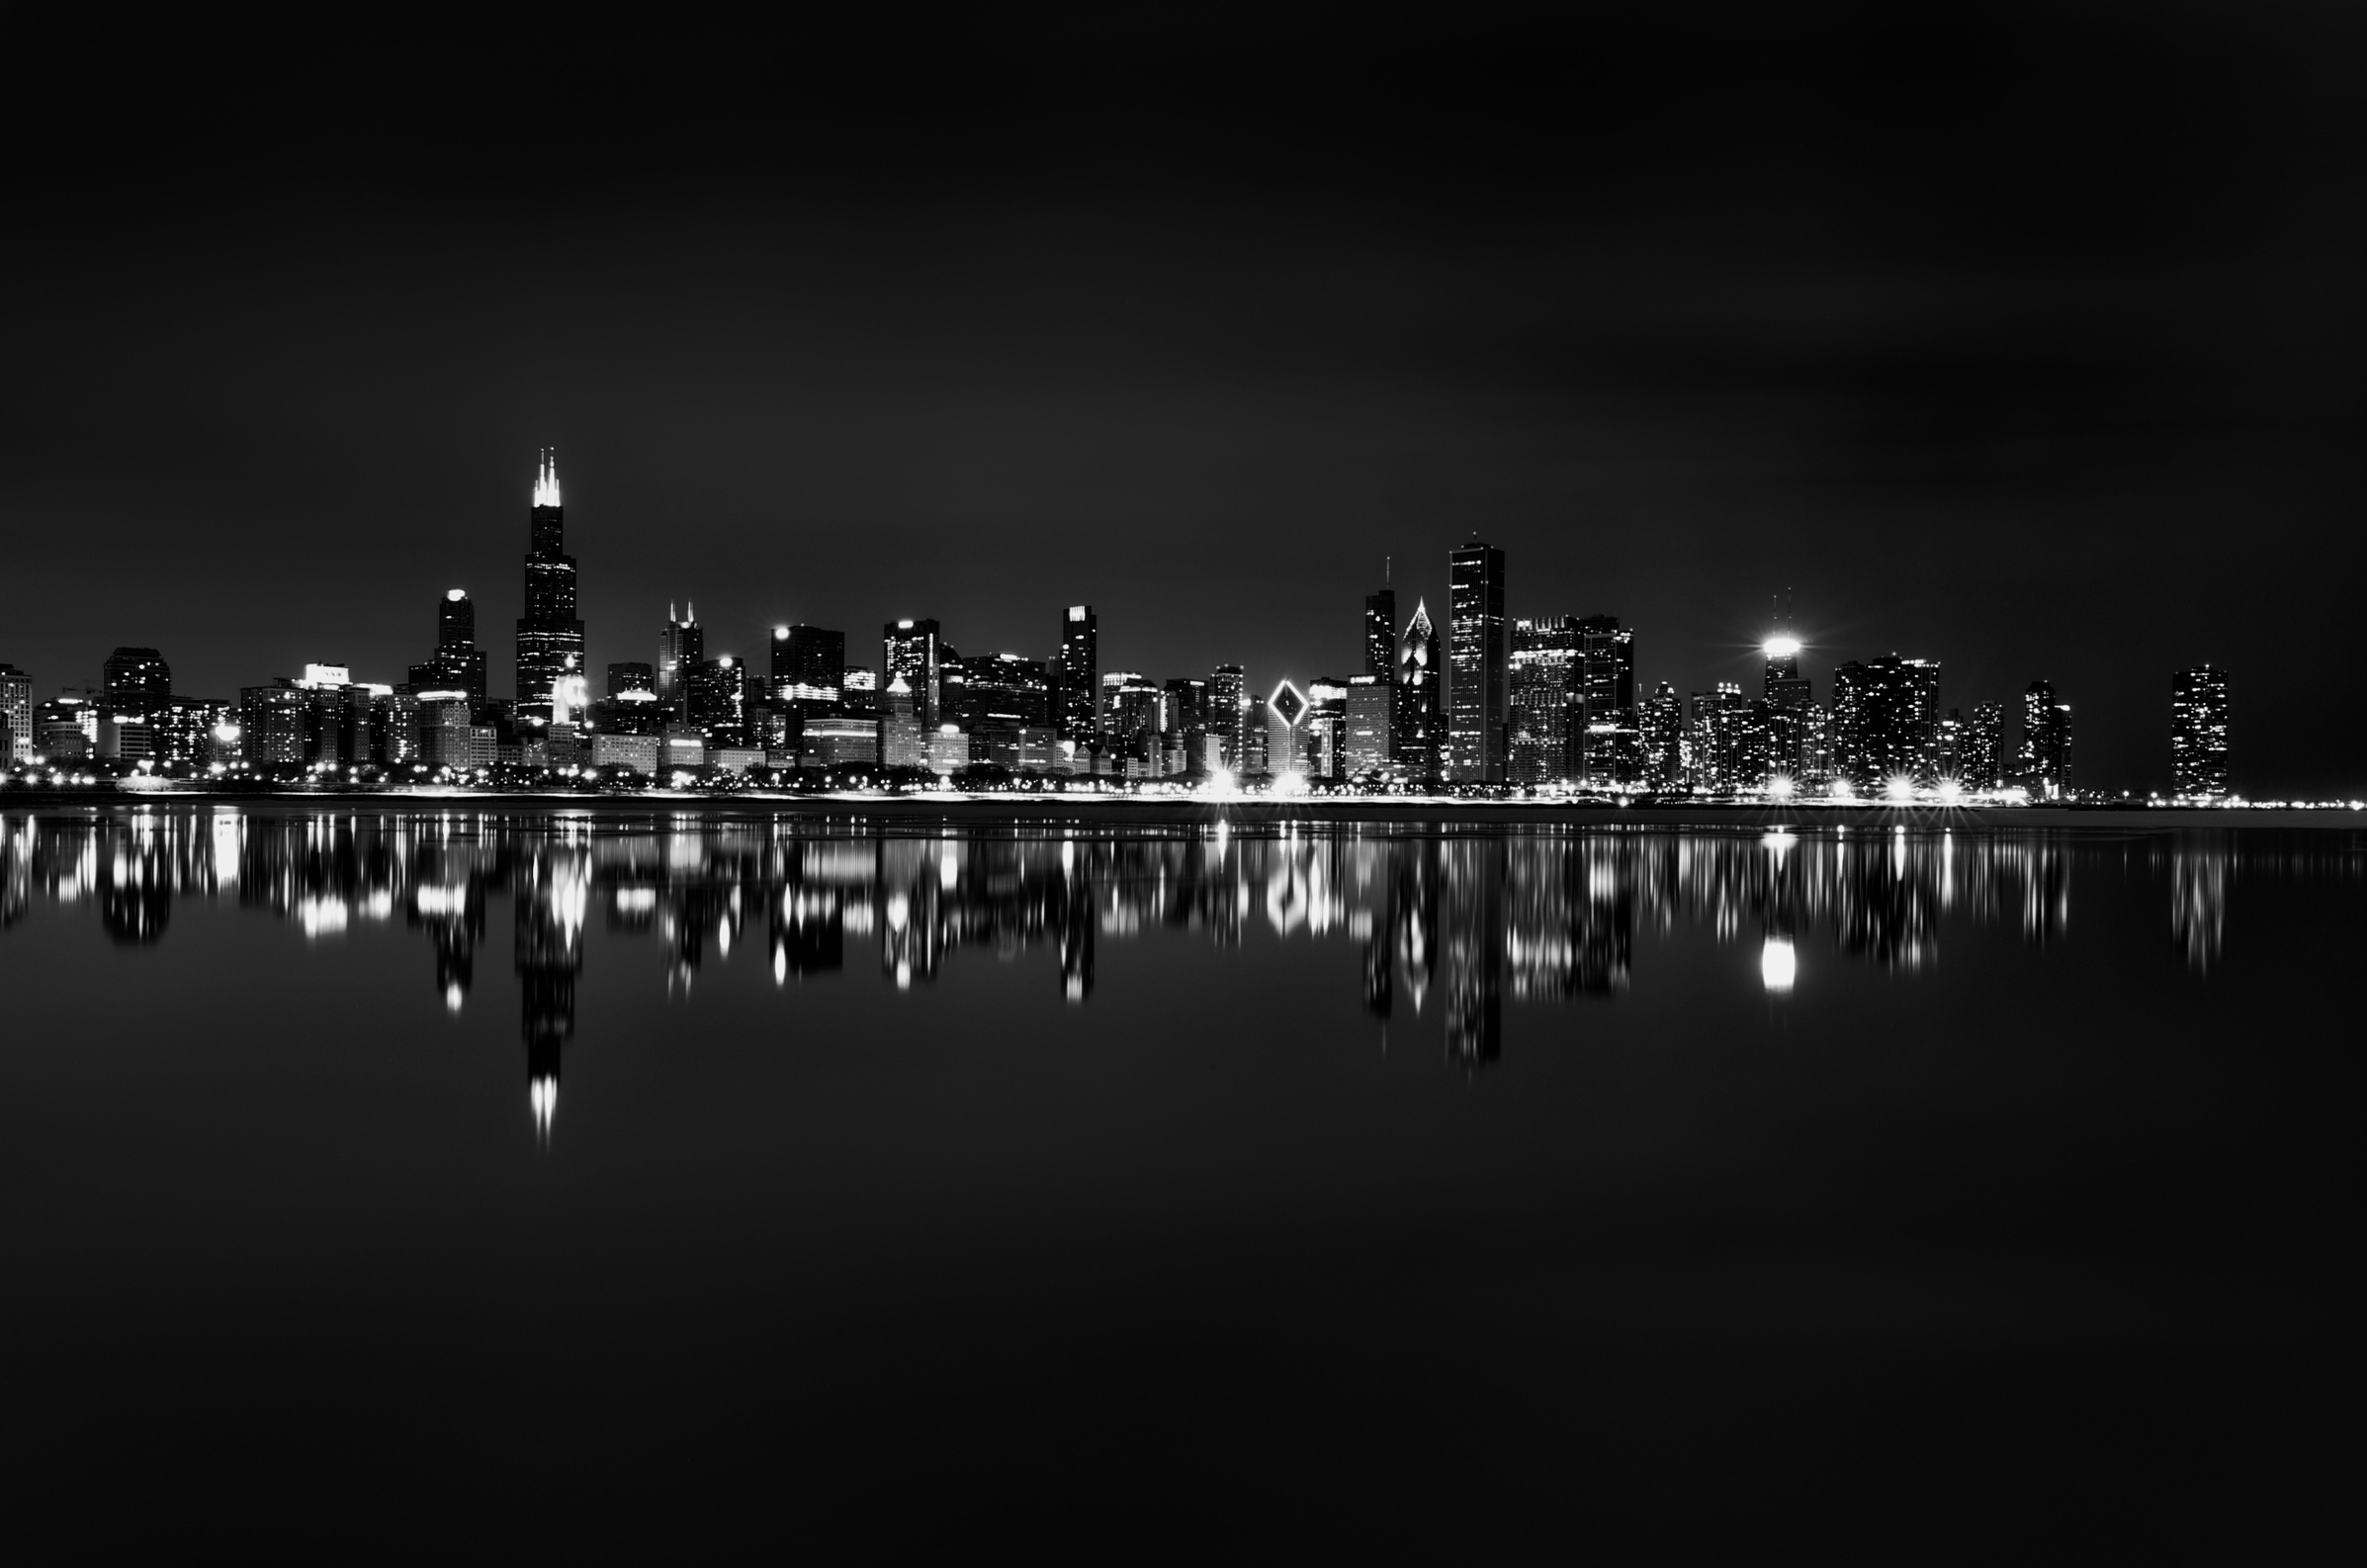 Skyline Black and White Wallpaper in High Resolution at City Wallpaper 2394x1586